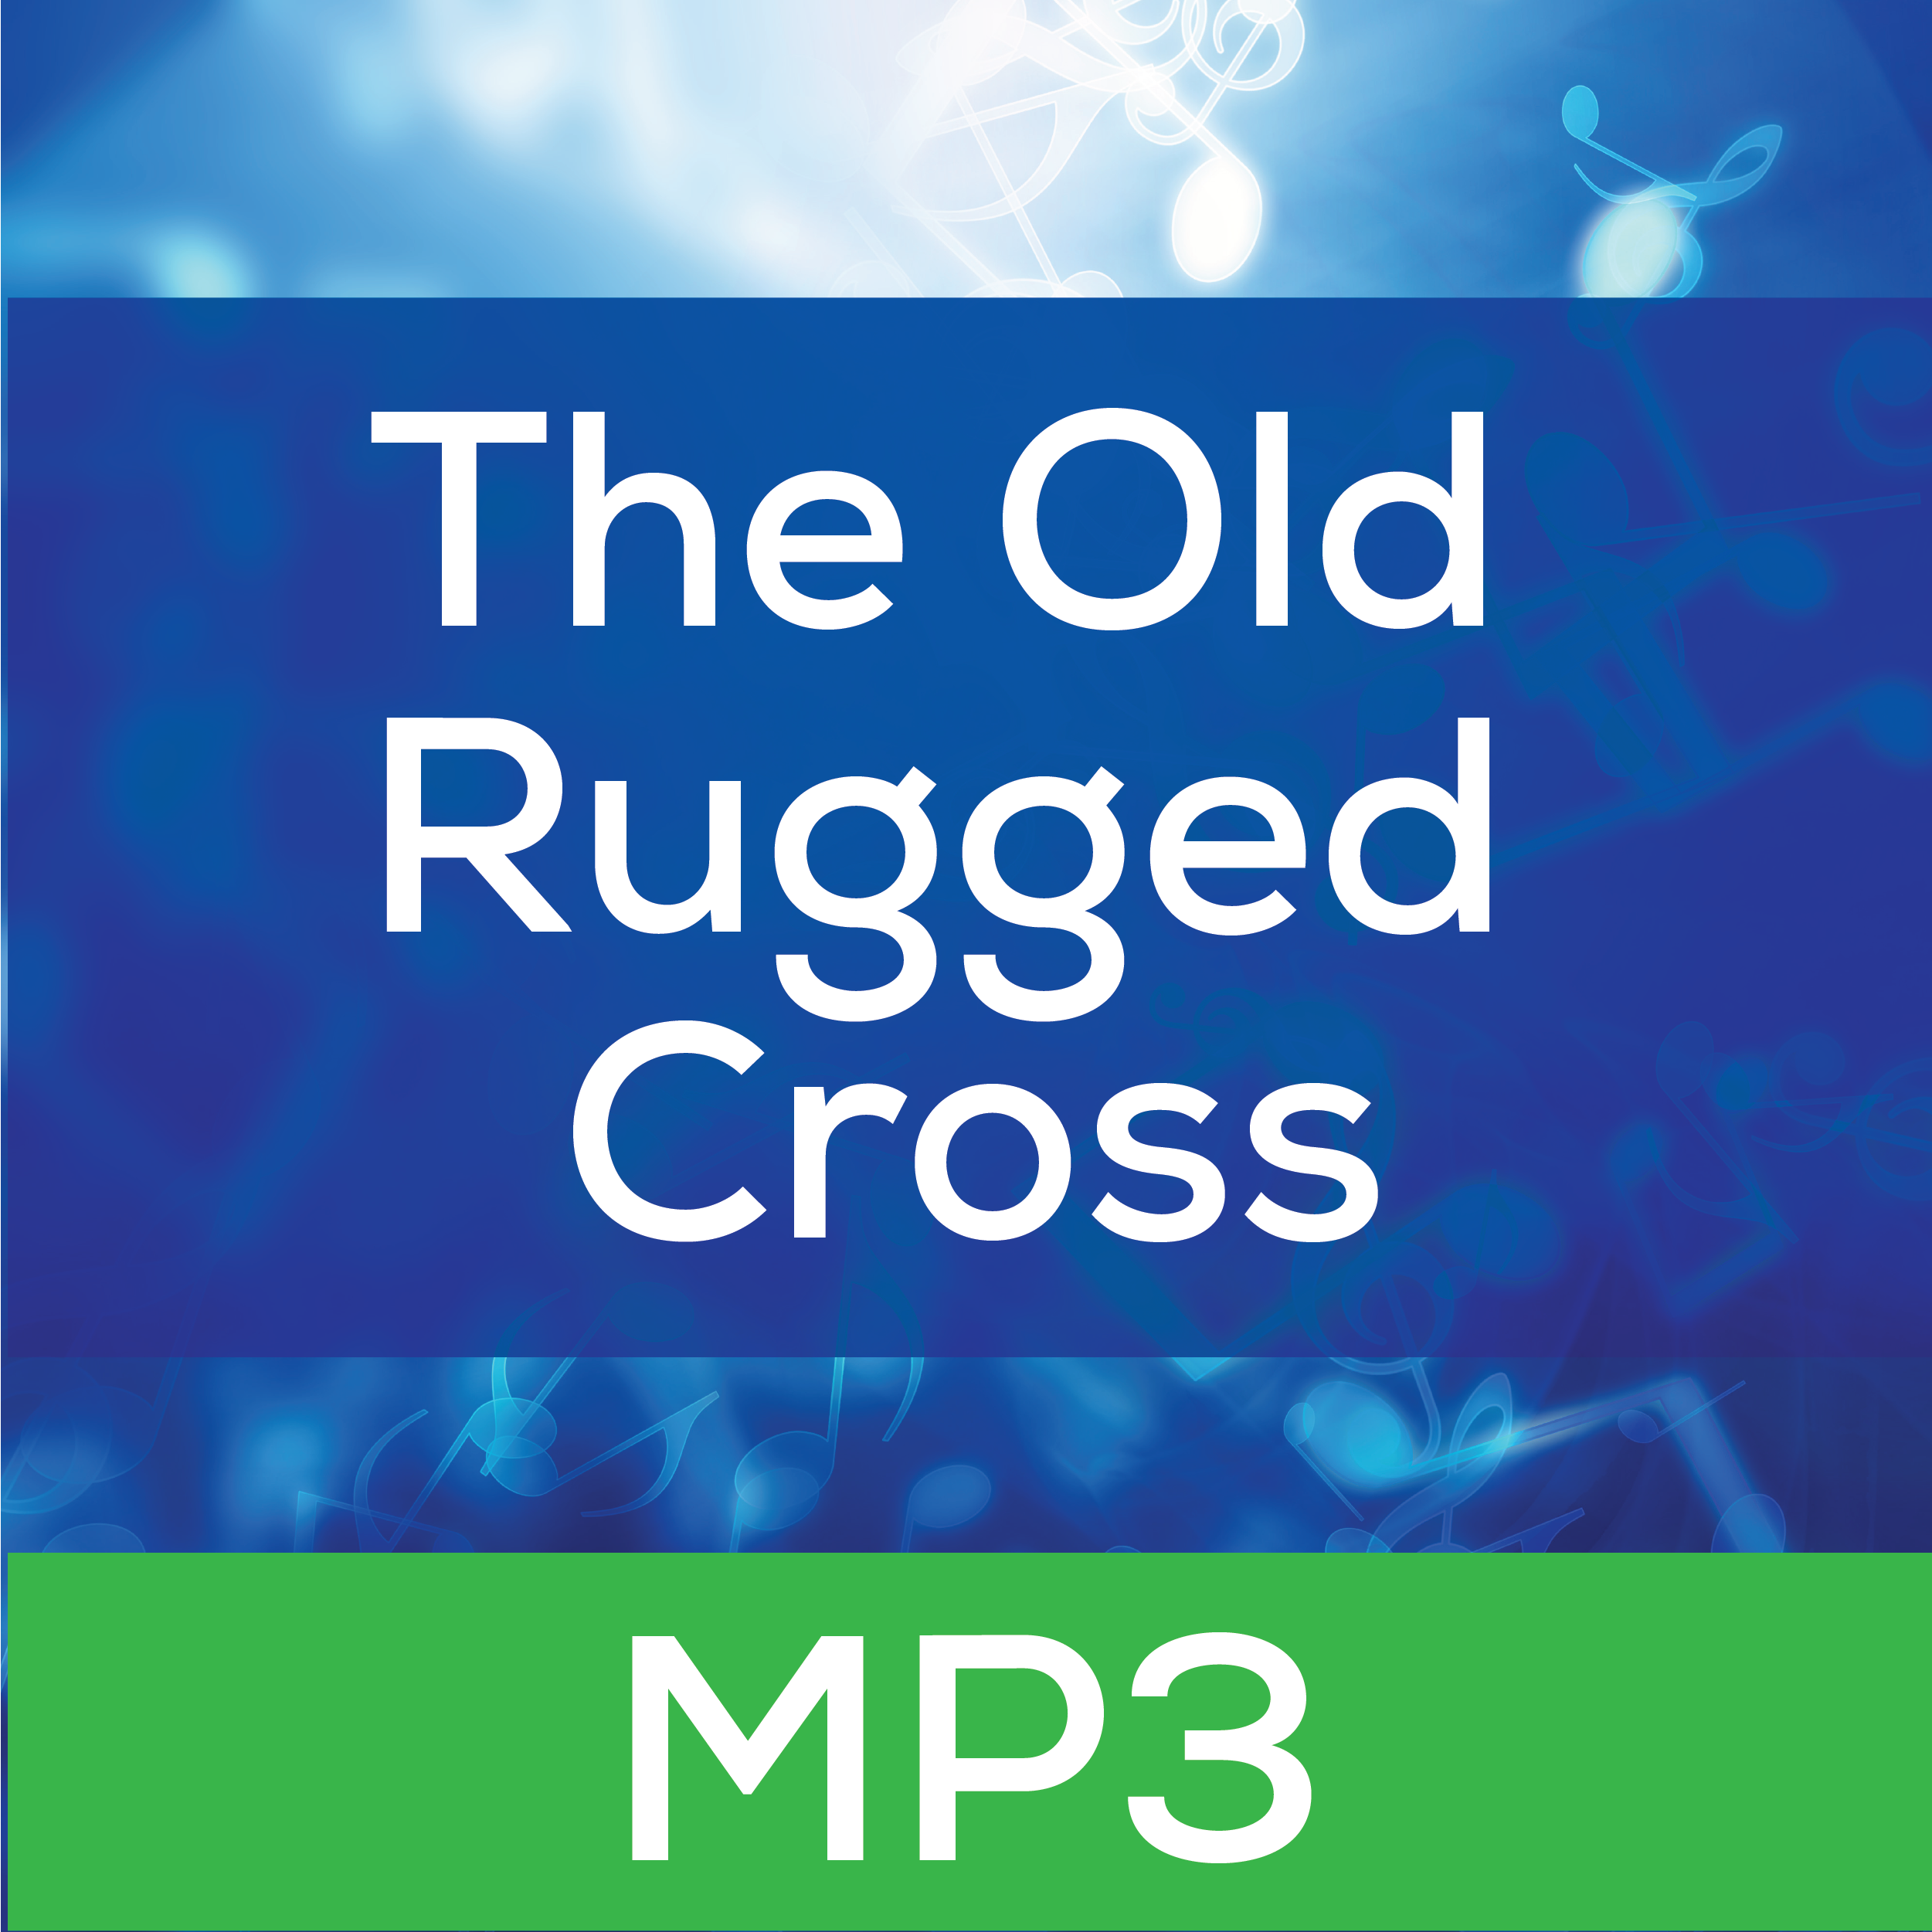 The Old Rugged Cross Mp3